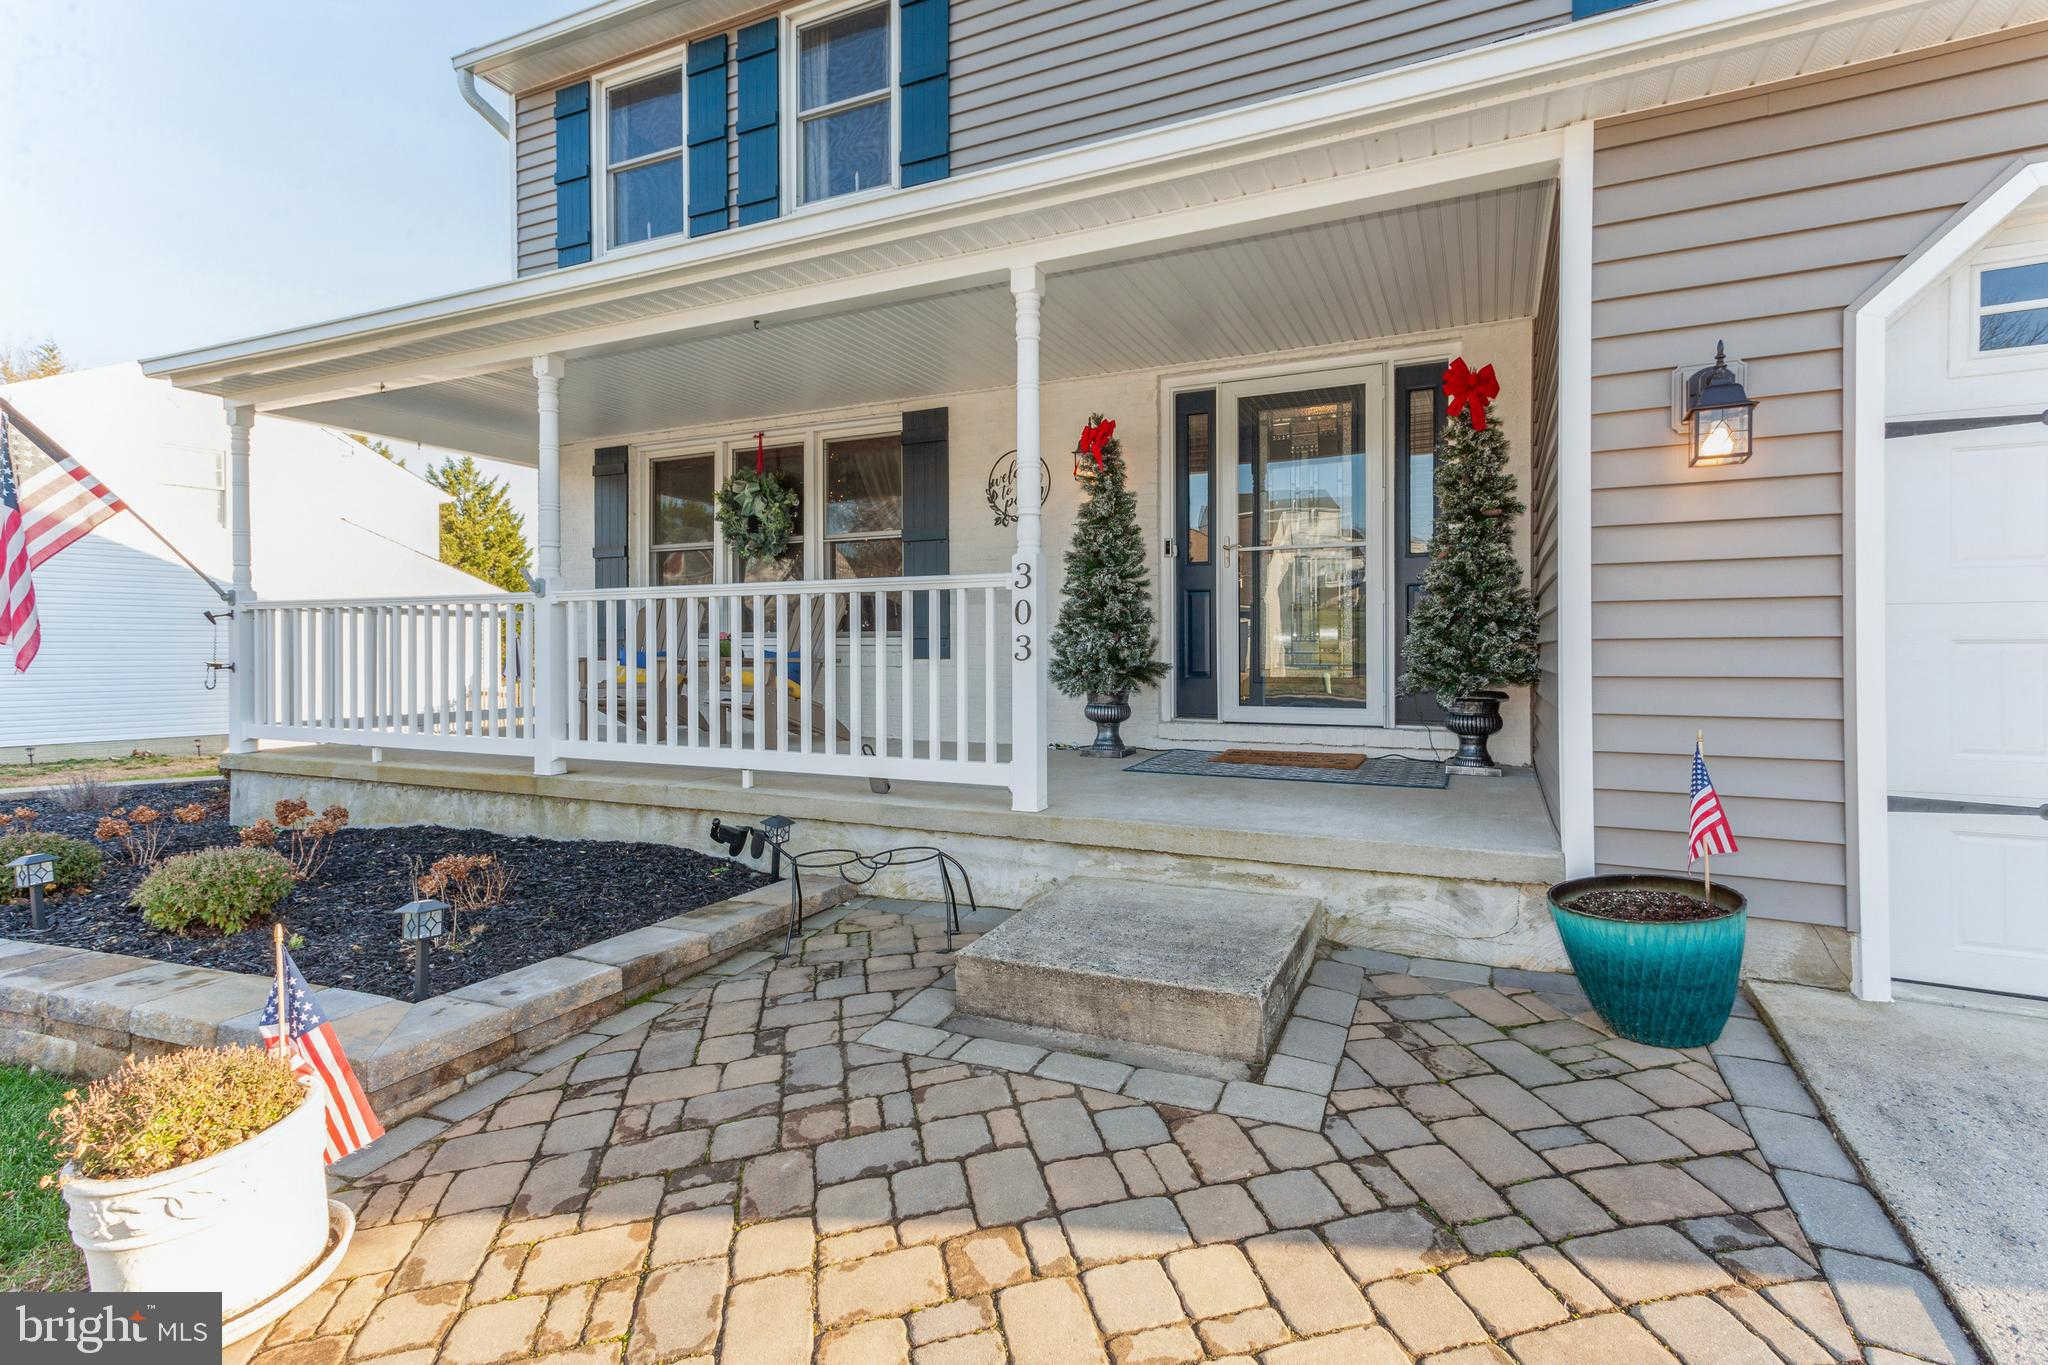 303 Kathryn Way, Havre DE Grace, MD 21078 is now new to the market!